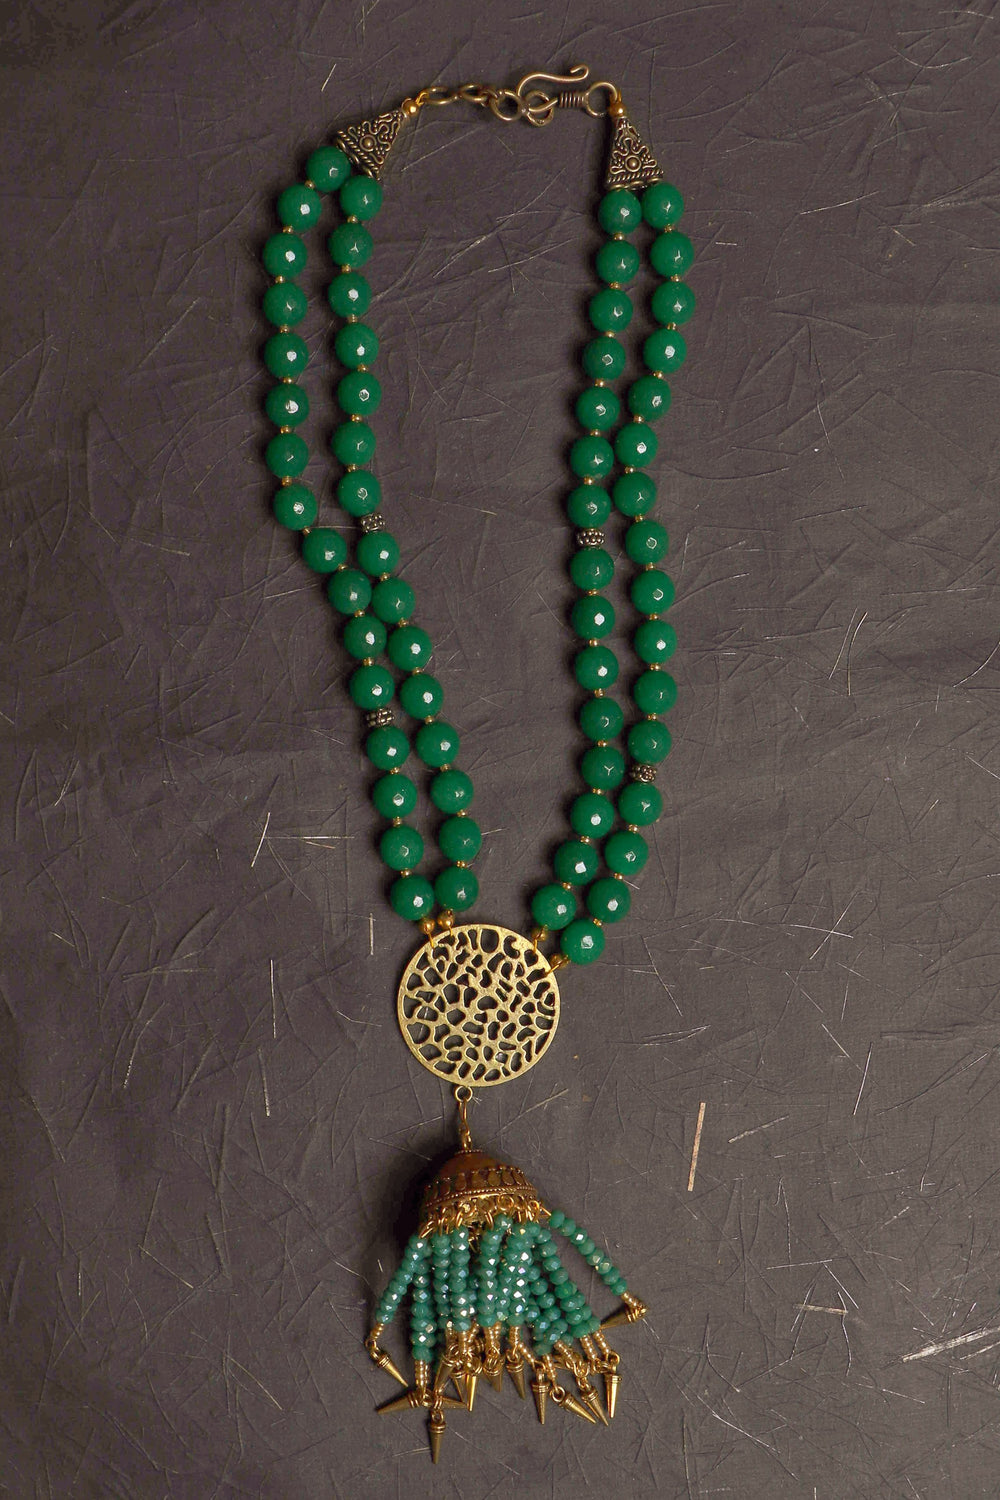 green onyx Jewelry necklace with double stranded green onyx beads, with a Mandala pendant